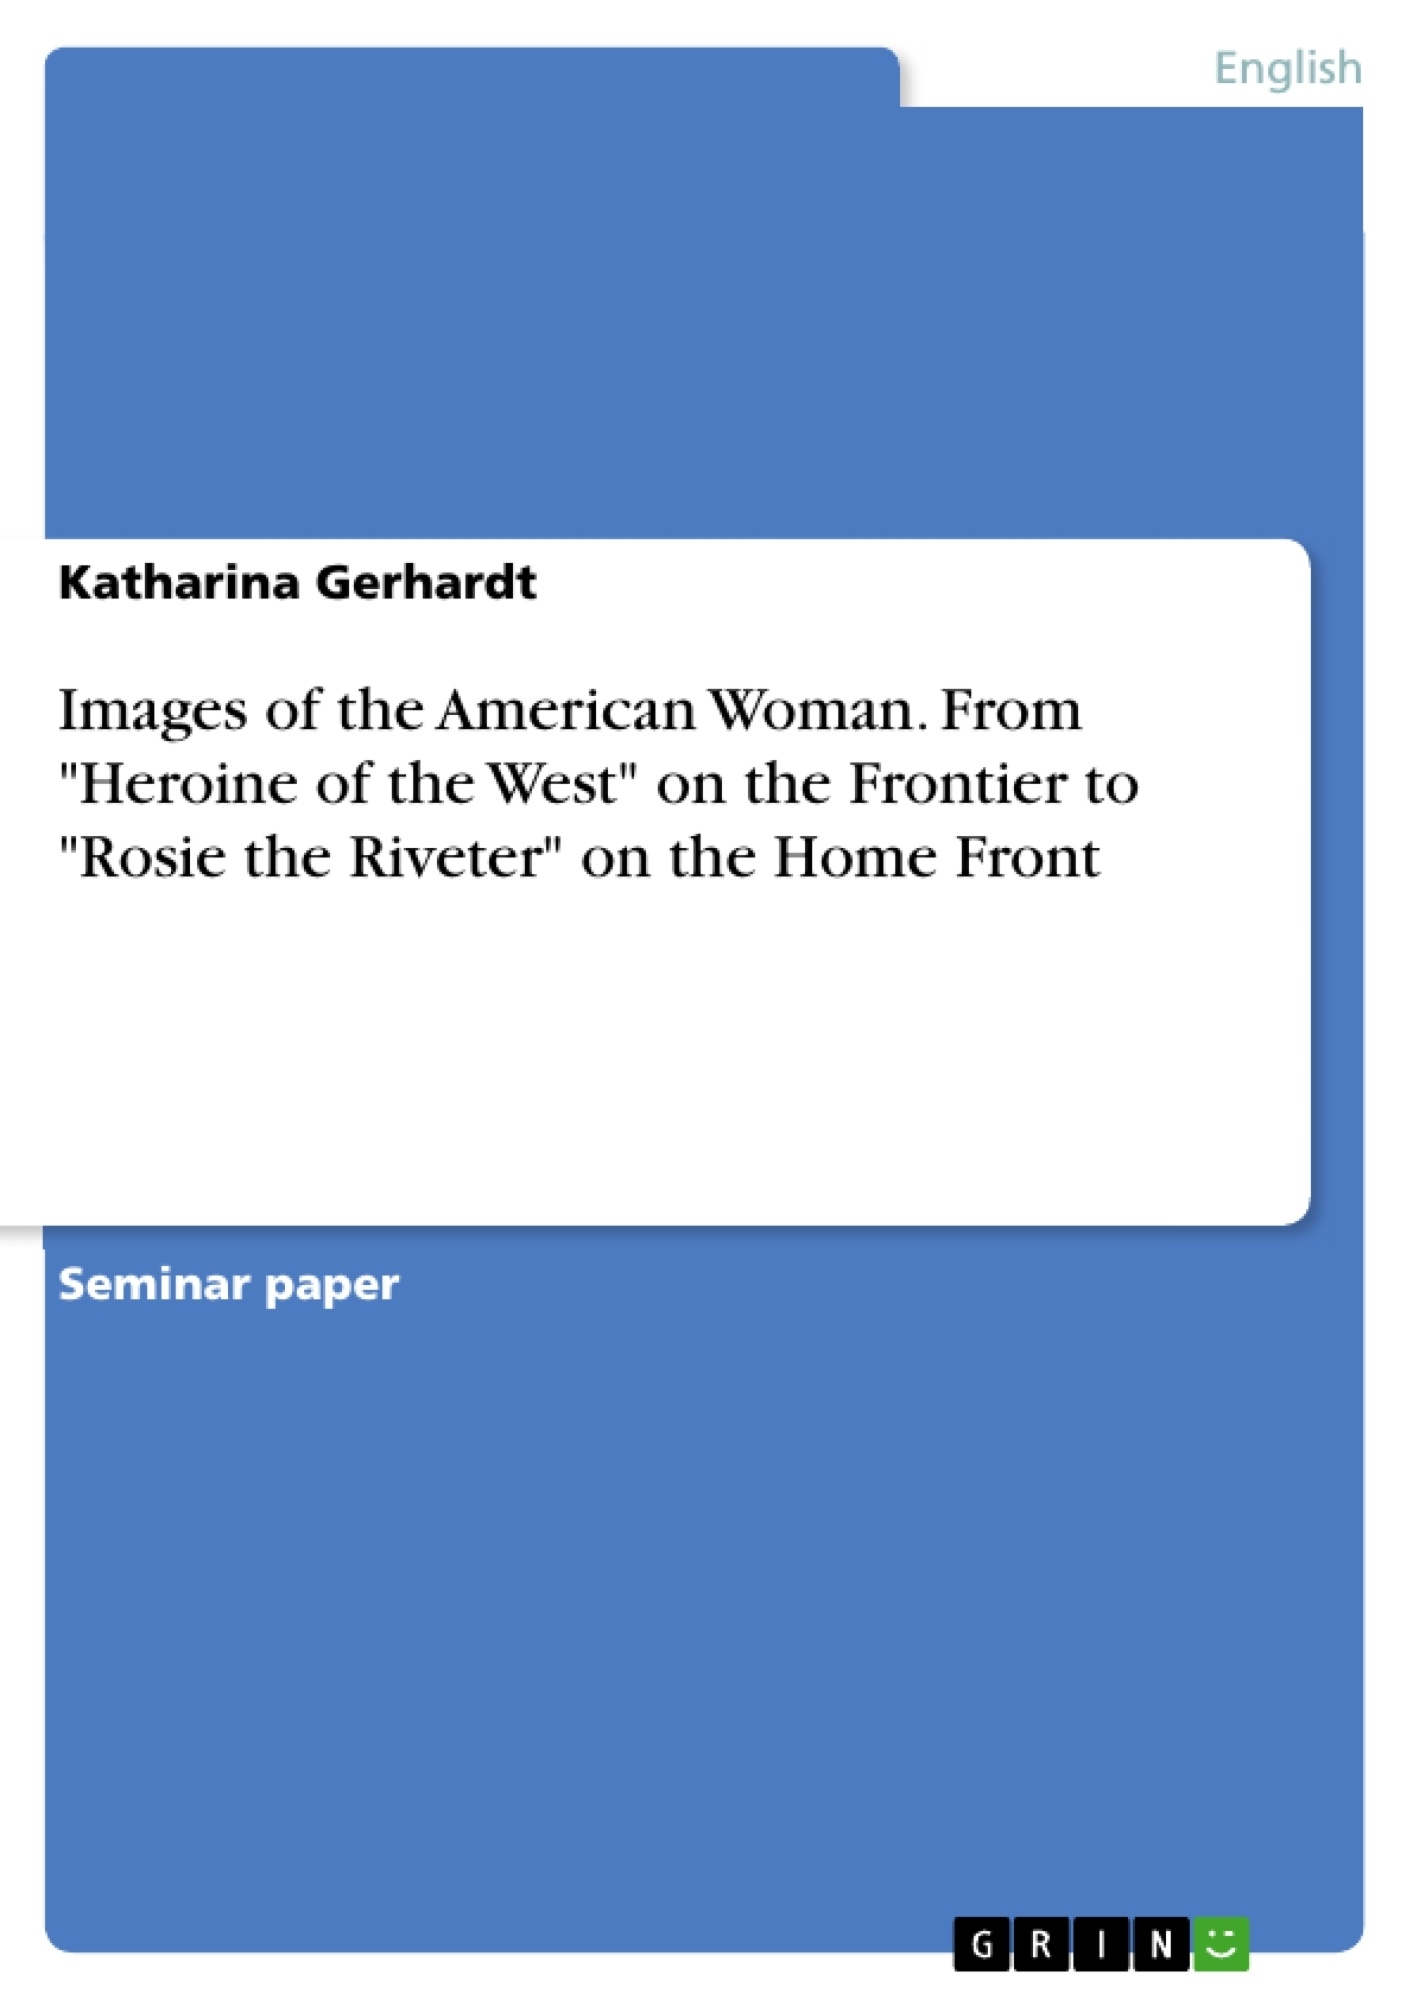 """Title: Images of the American Woman. From """"Heroine of the West"""" on the Frontier to """"Rosie the Riveter"""" on the Home Front"""